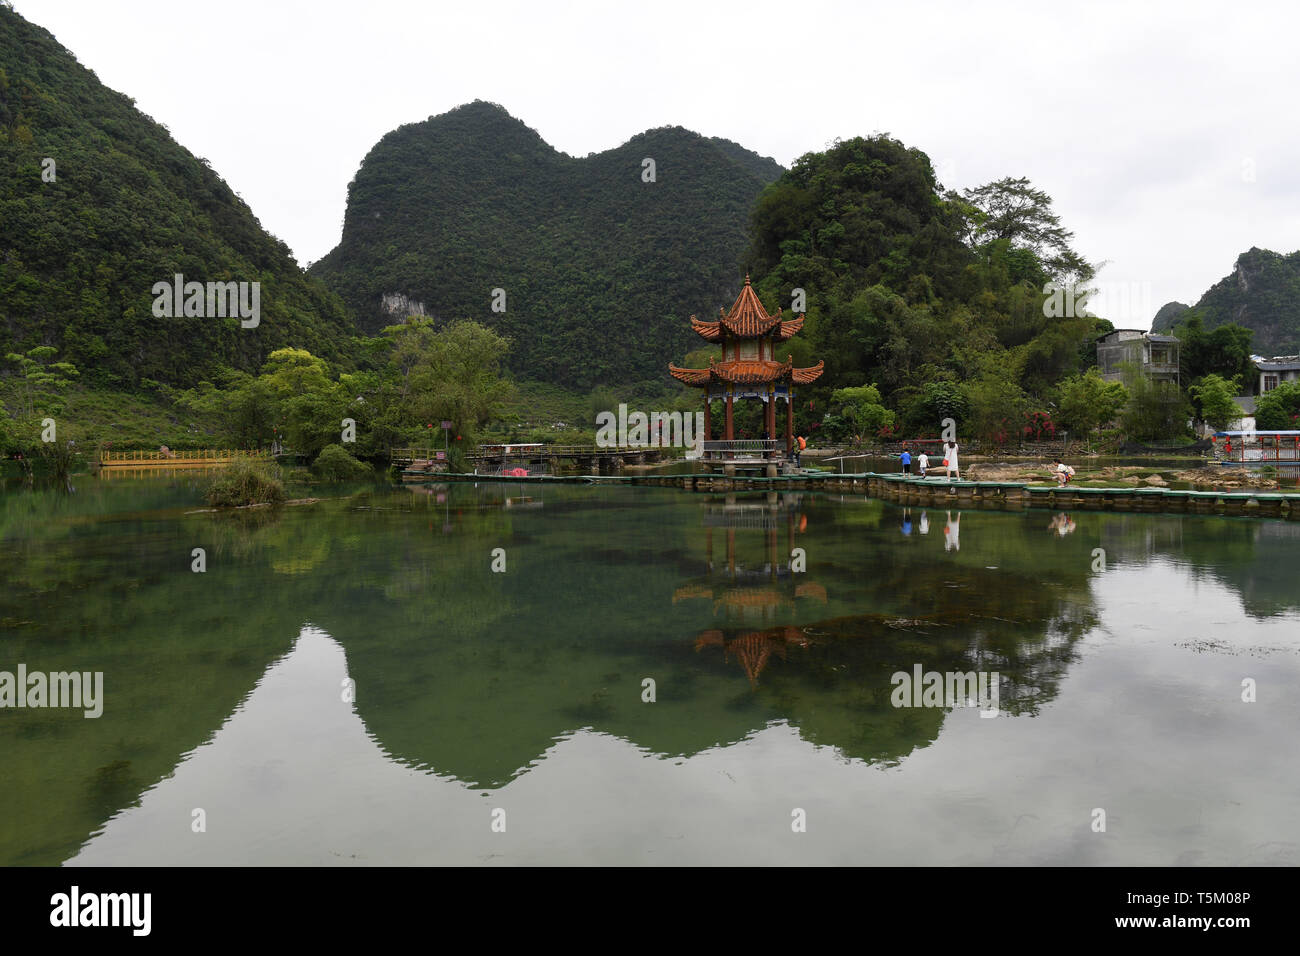 (190425) -- NANNING, April 25, 2019 (Xinhua) -- Tourist visit the Equan scenic spot of Jingxi City, south China's Guangxi Zhuang Autonomous Region, April 16, 2019. Guangxi has promoted major tourism projects and brands in recent years, and the customs of border area have attracted a lot of tourists. (Xinhua/Lu Boan) Stock Photo